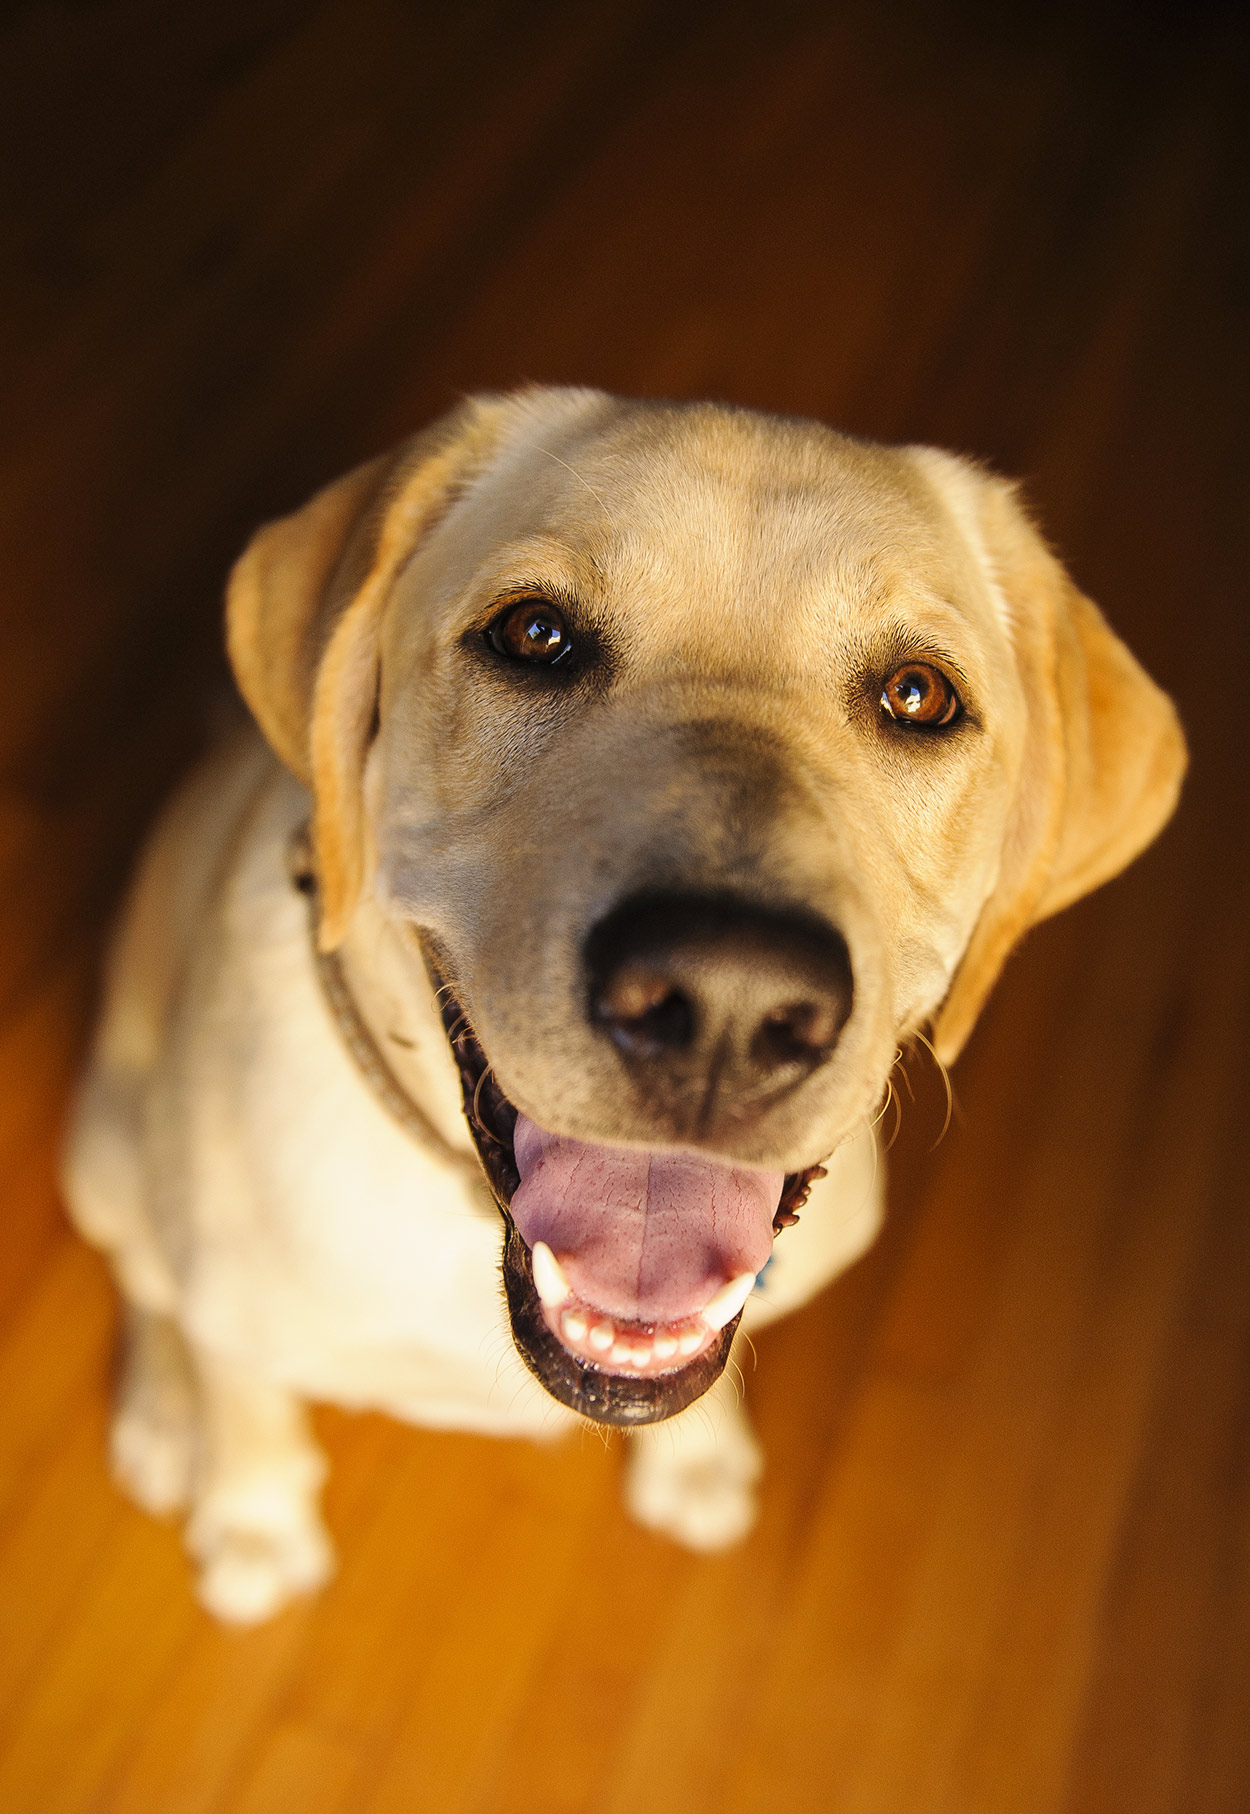 Can Dogs Eat Pork? A Guide To Pork and Pork Bones or Ribs for Dogs